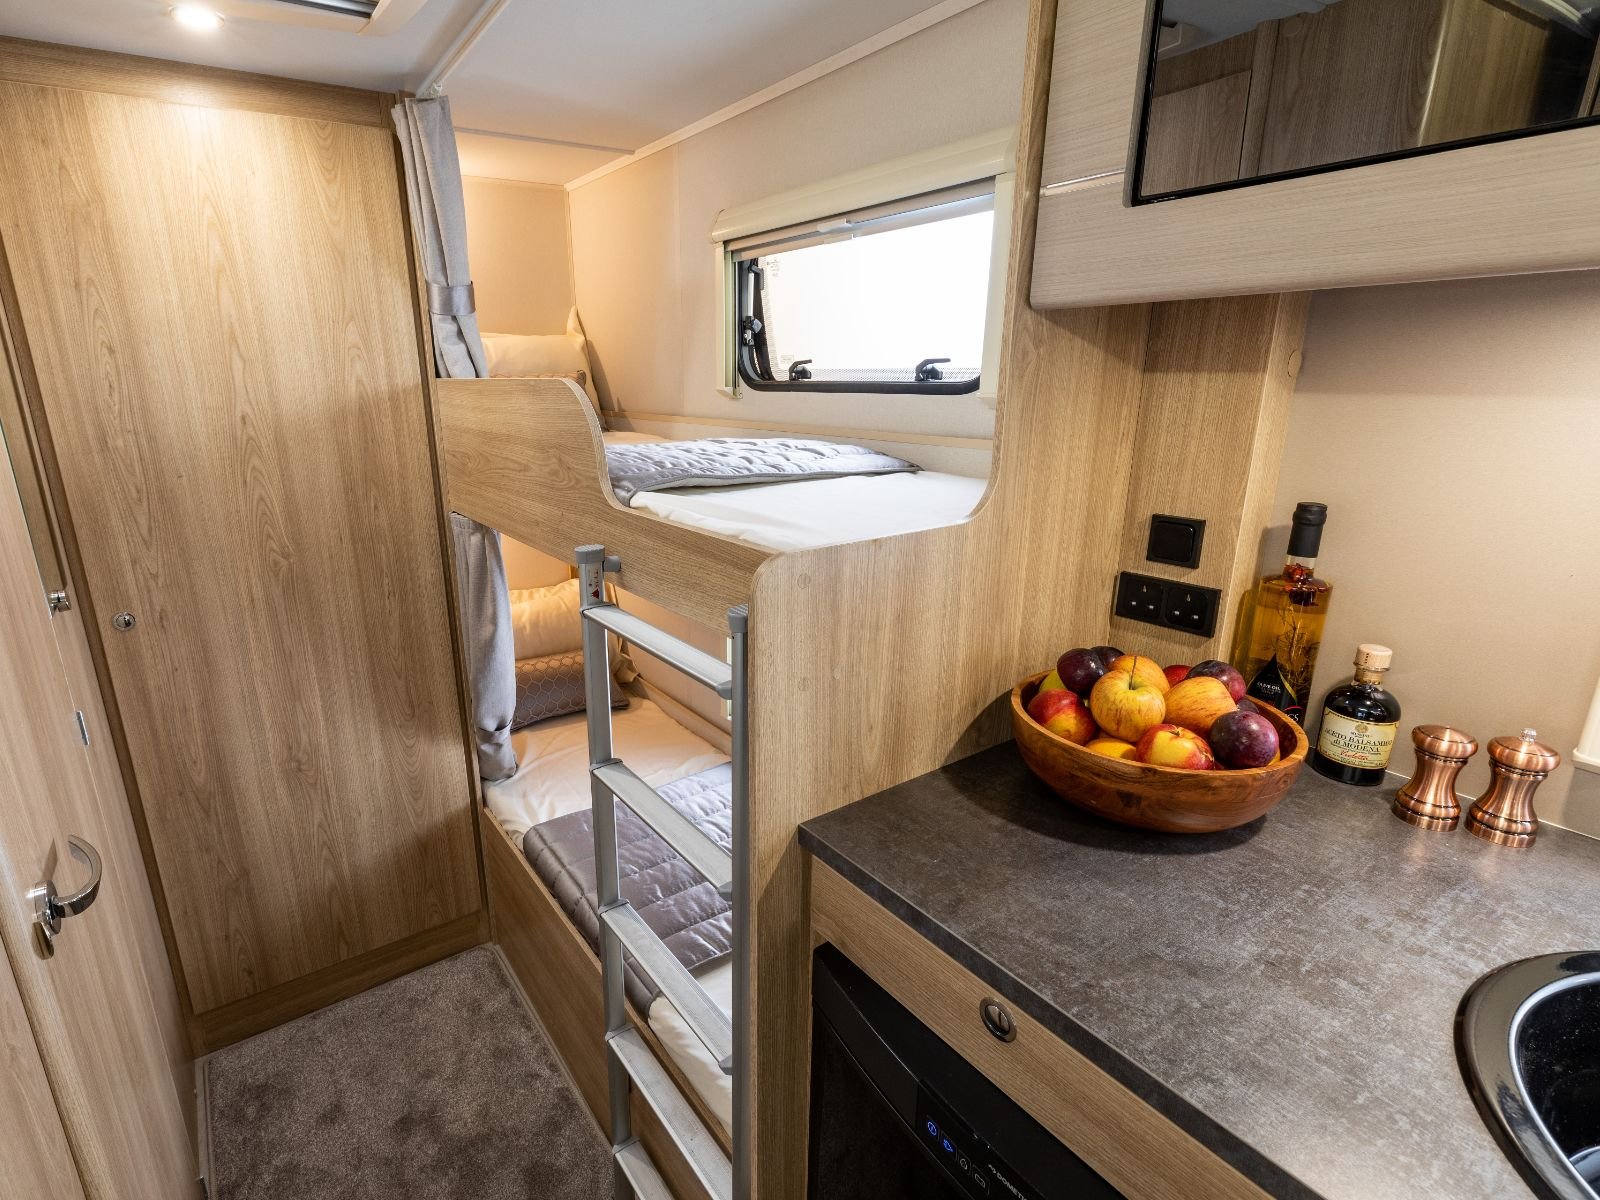 Double bunk bed layout with ladder access and kitchen view'